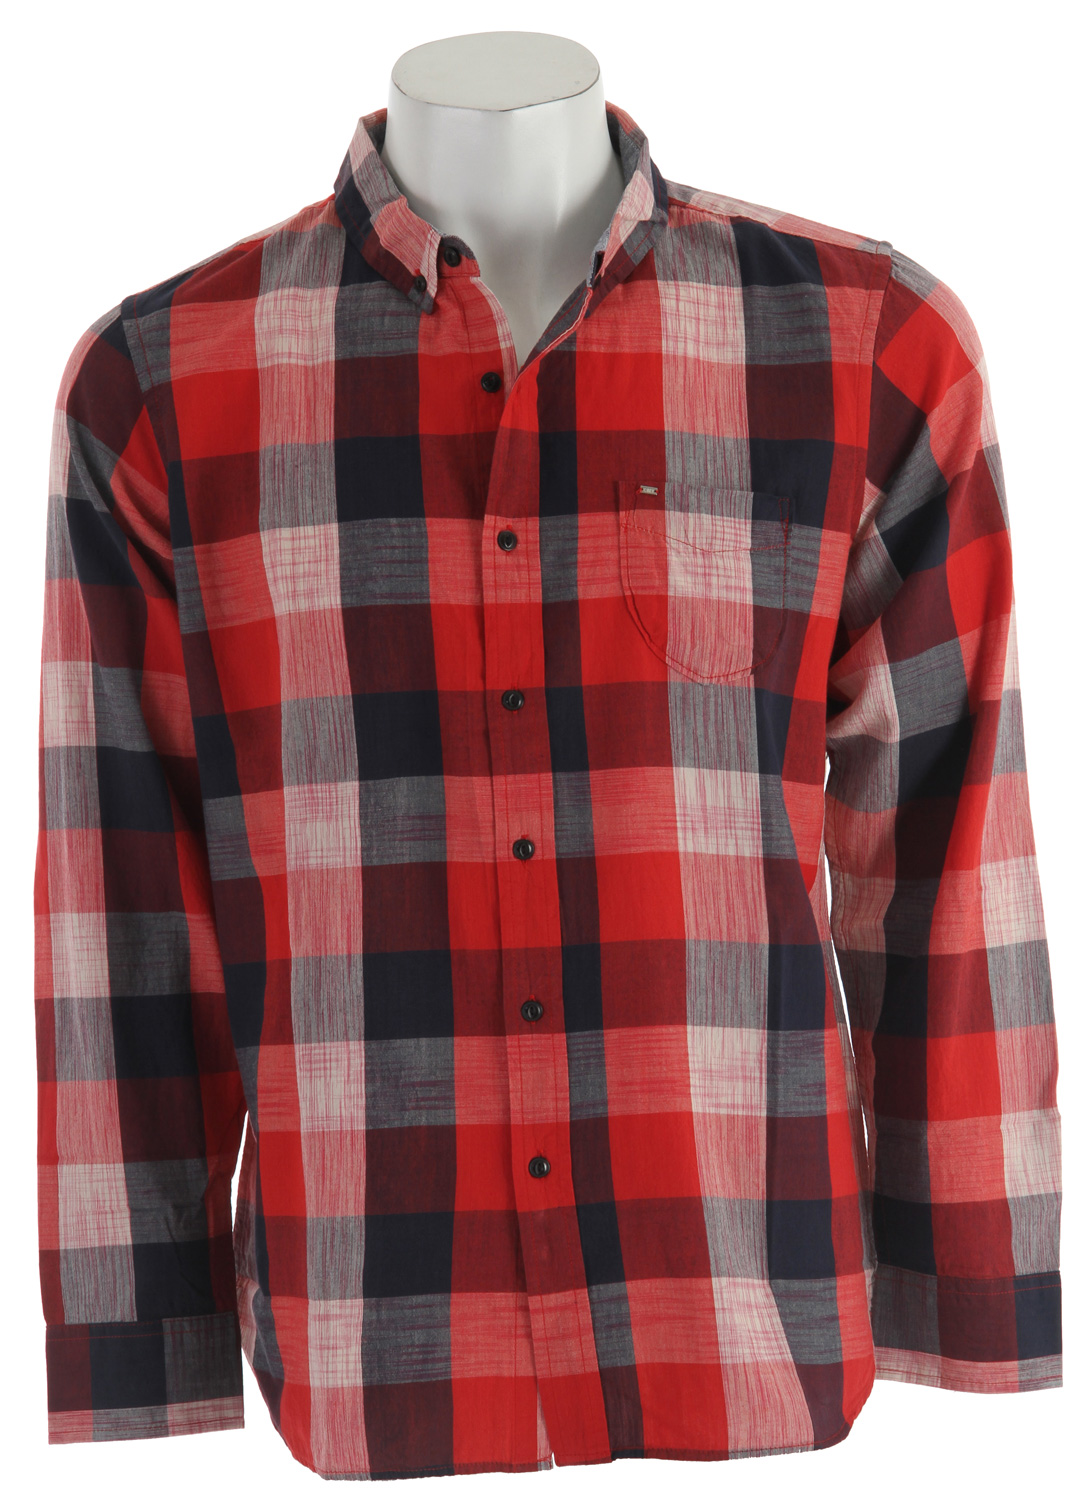 Guns and Military Key Features of the Obey West Indies L/S Shirt: 100% Cotton Slim fit Plaid woven with single chest pocket Chambray interior collar stand and modern mini badge - $43.95